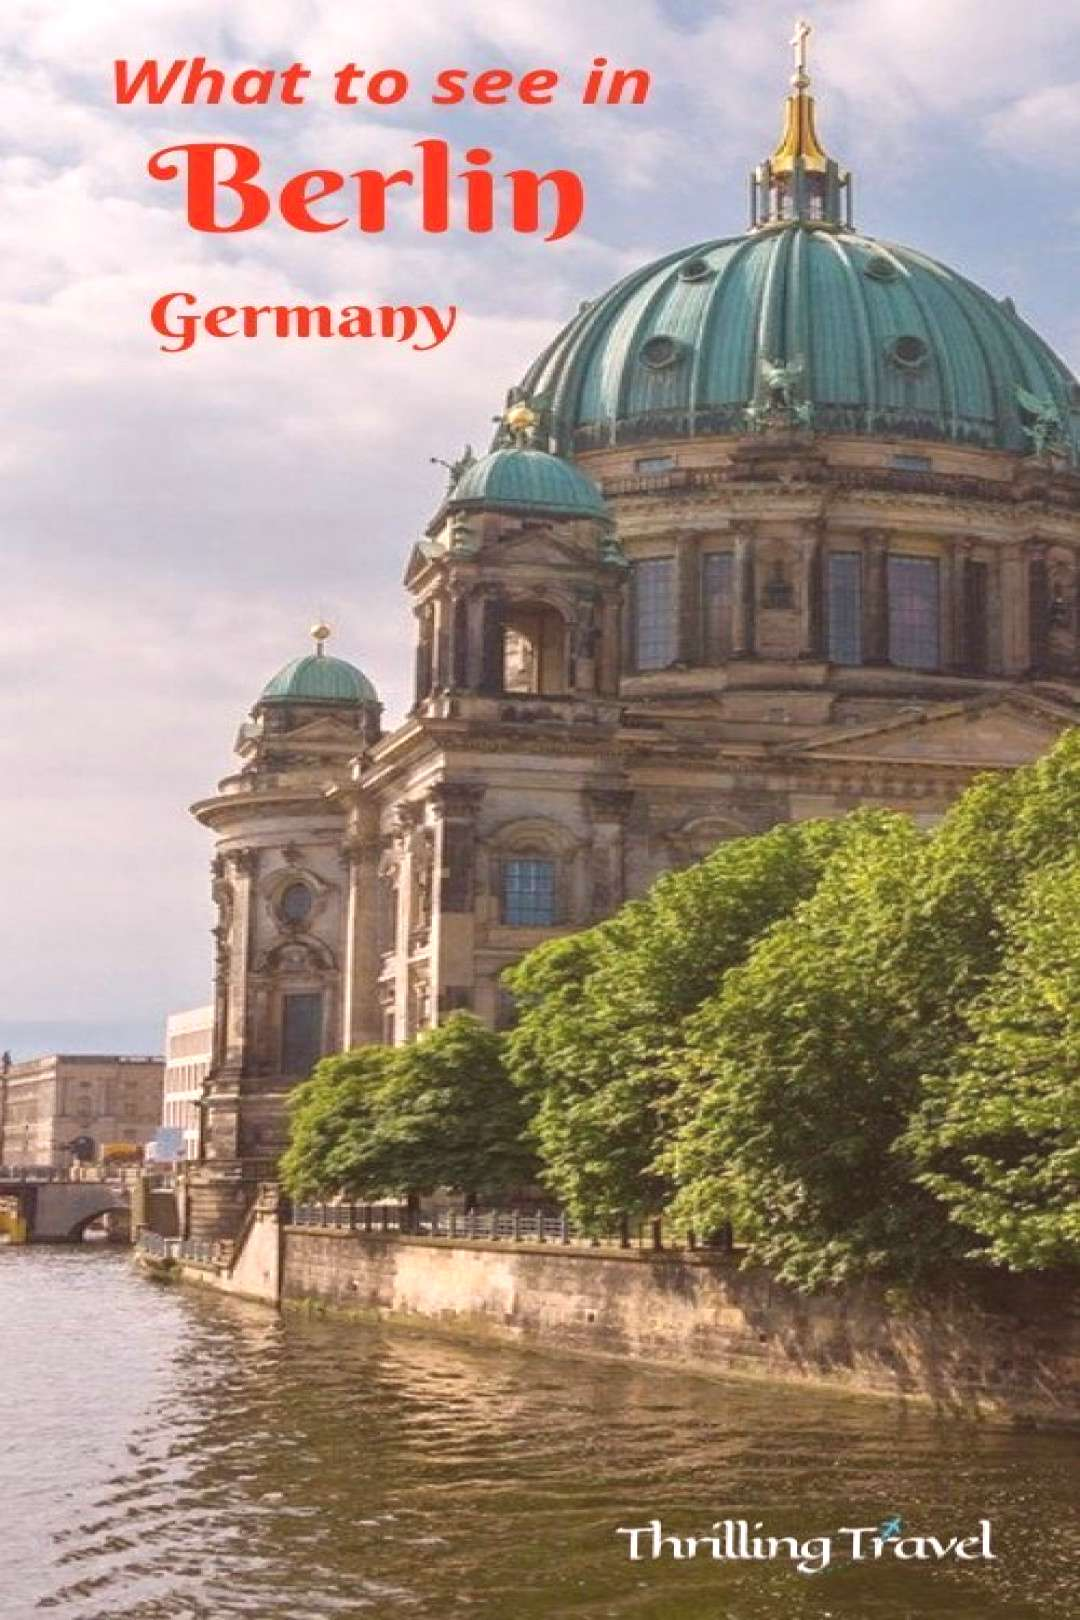 What to see in Berlin, Germany - Thrilling Travel If you are wondering what to see in Berlin, then